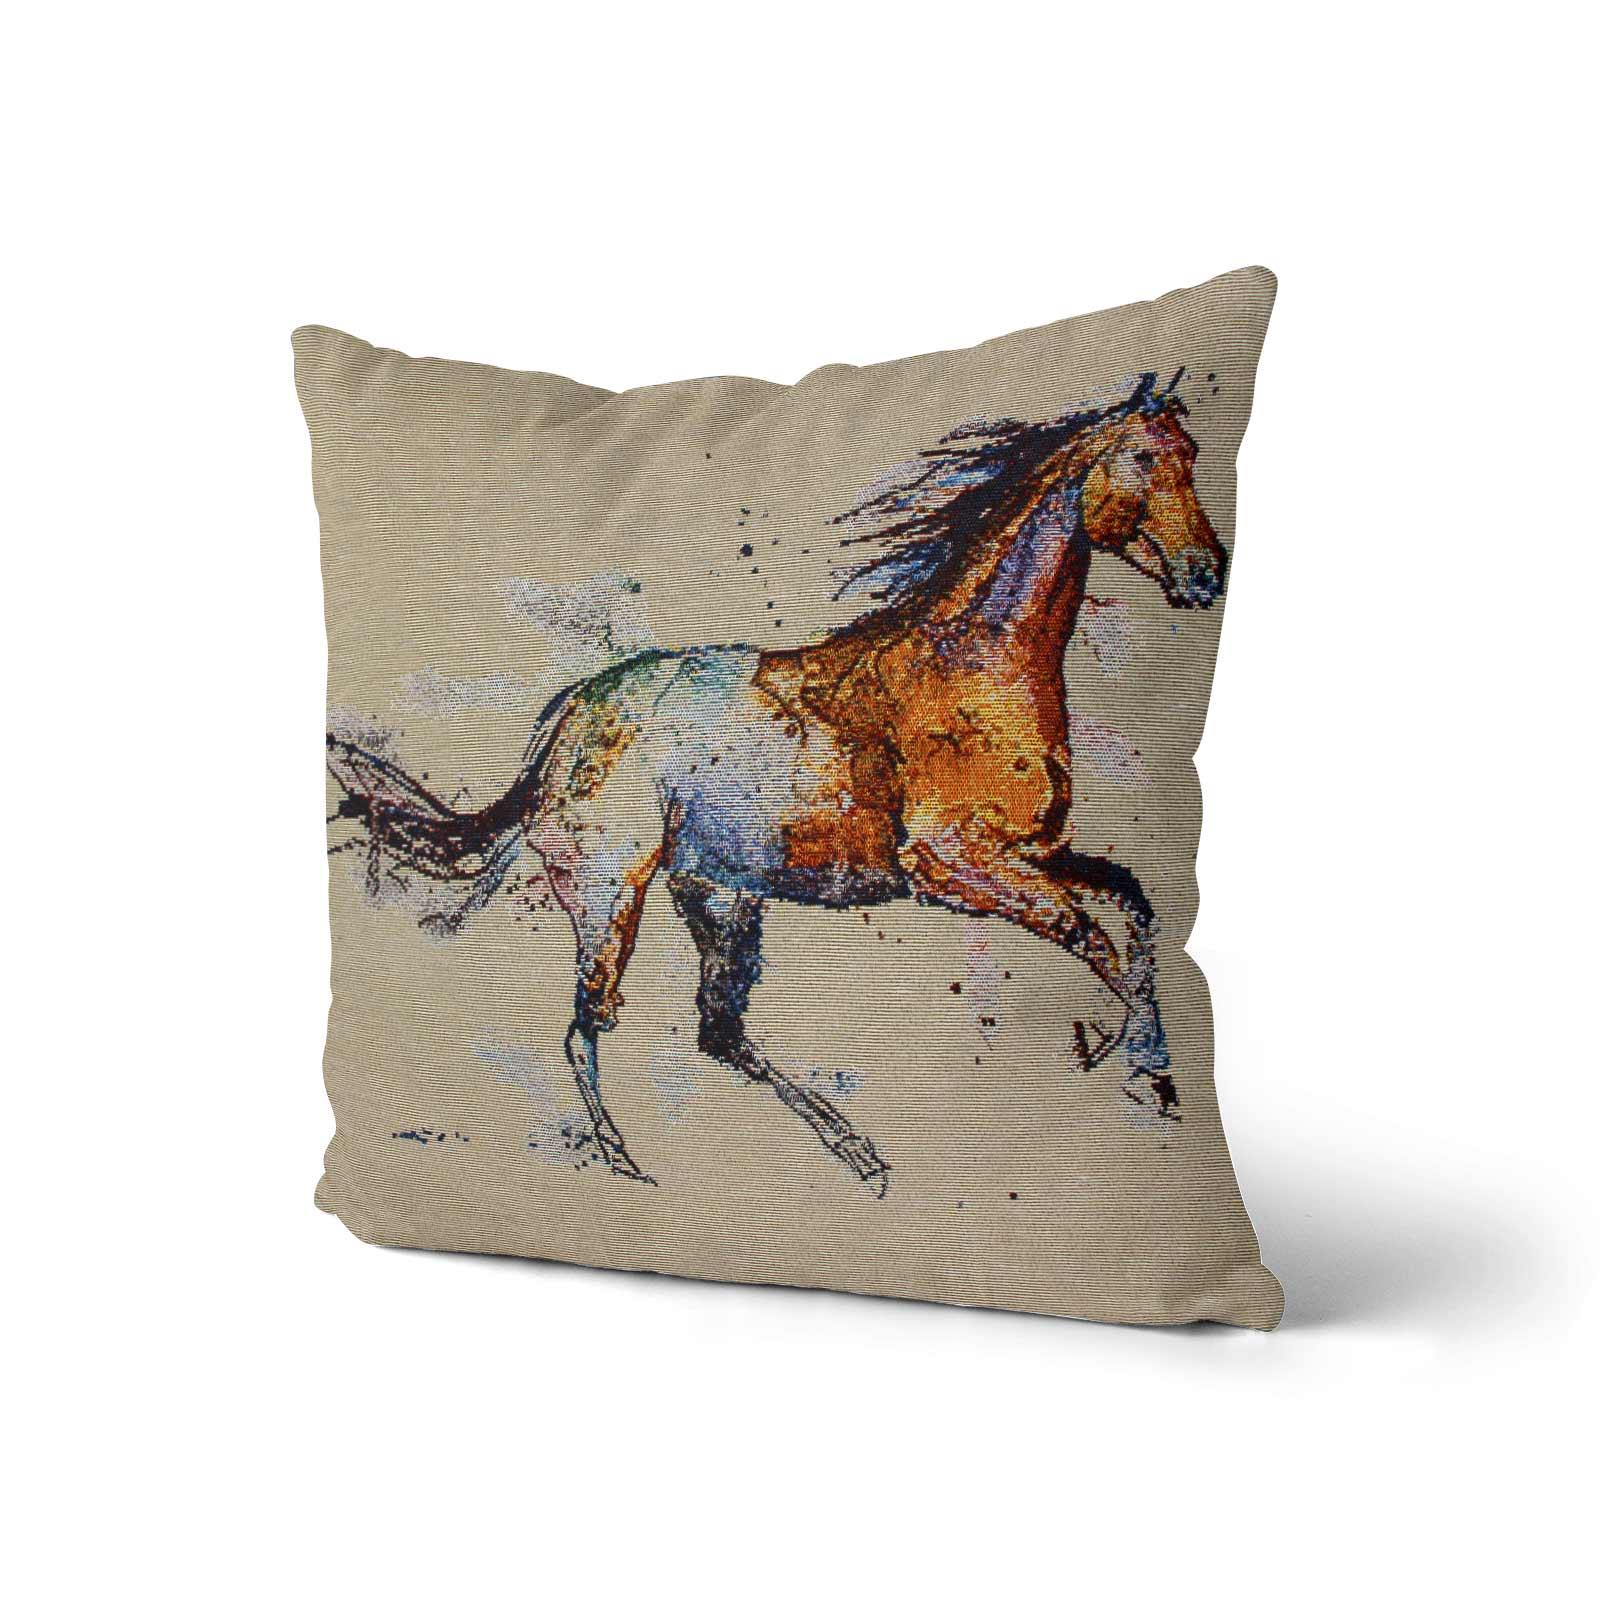 Tapestry-Cushion-Covers-Vintage-Pillow-Cover-Collection-18-034-45cm-Filled-Cushions thumbnail 74